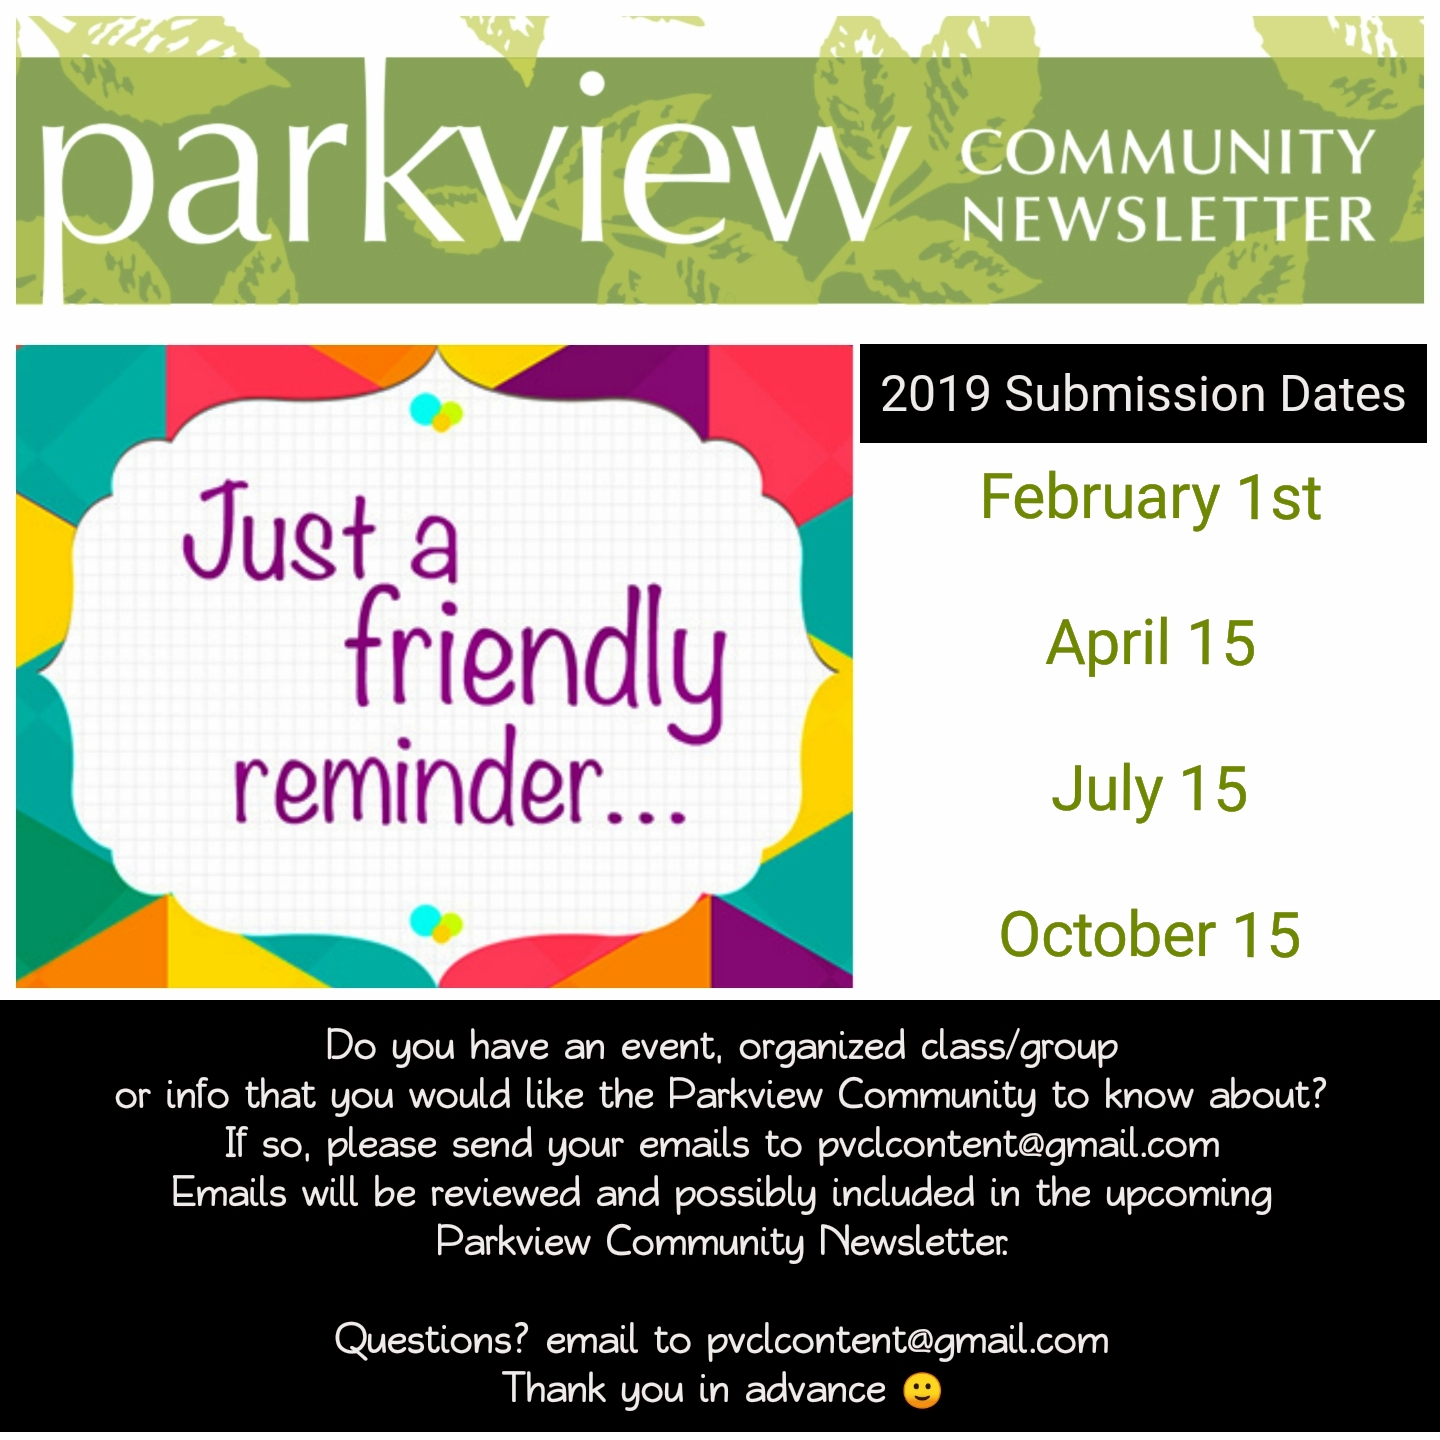 parkview newsletter dates 2019